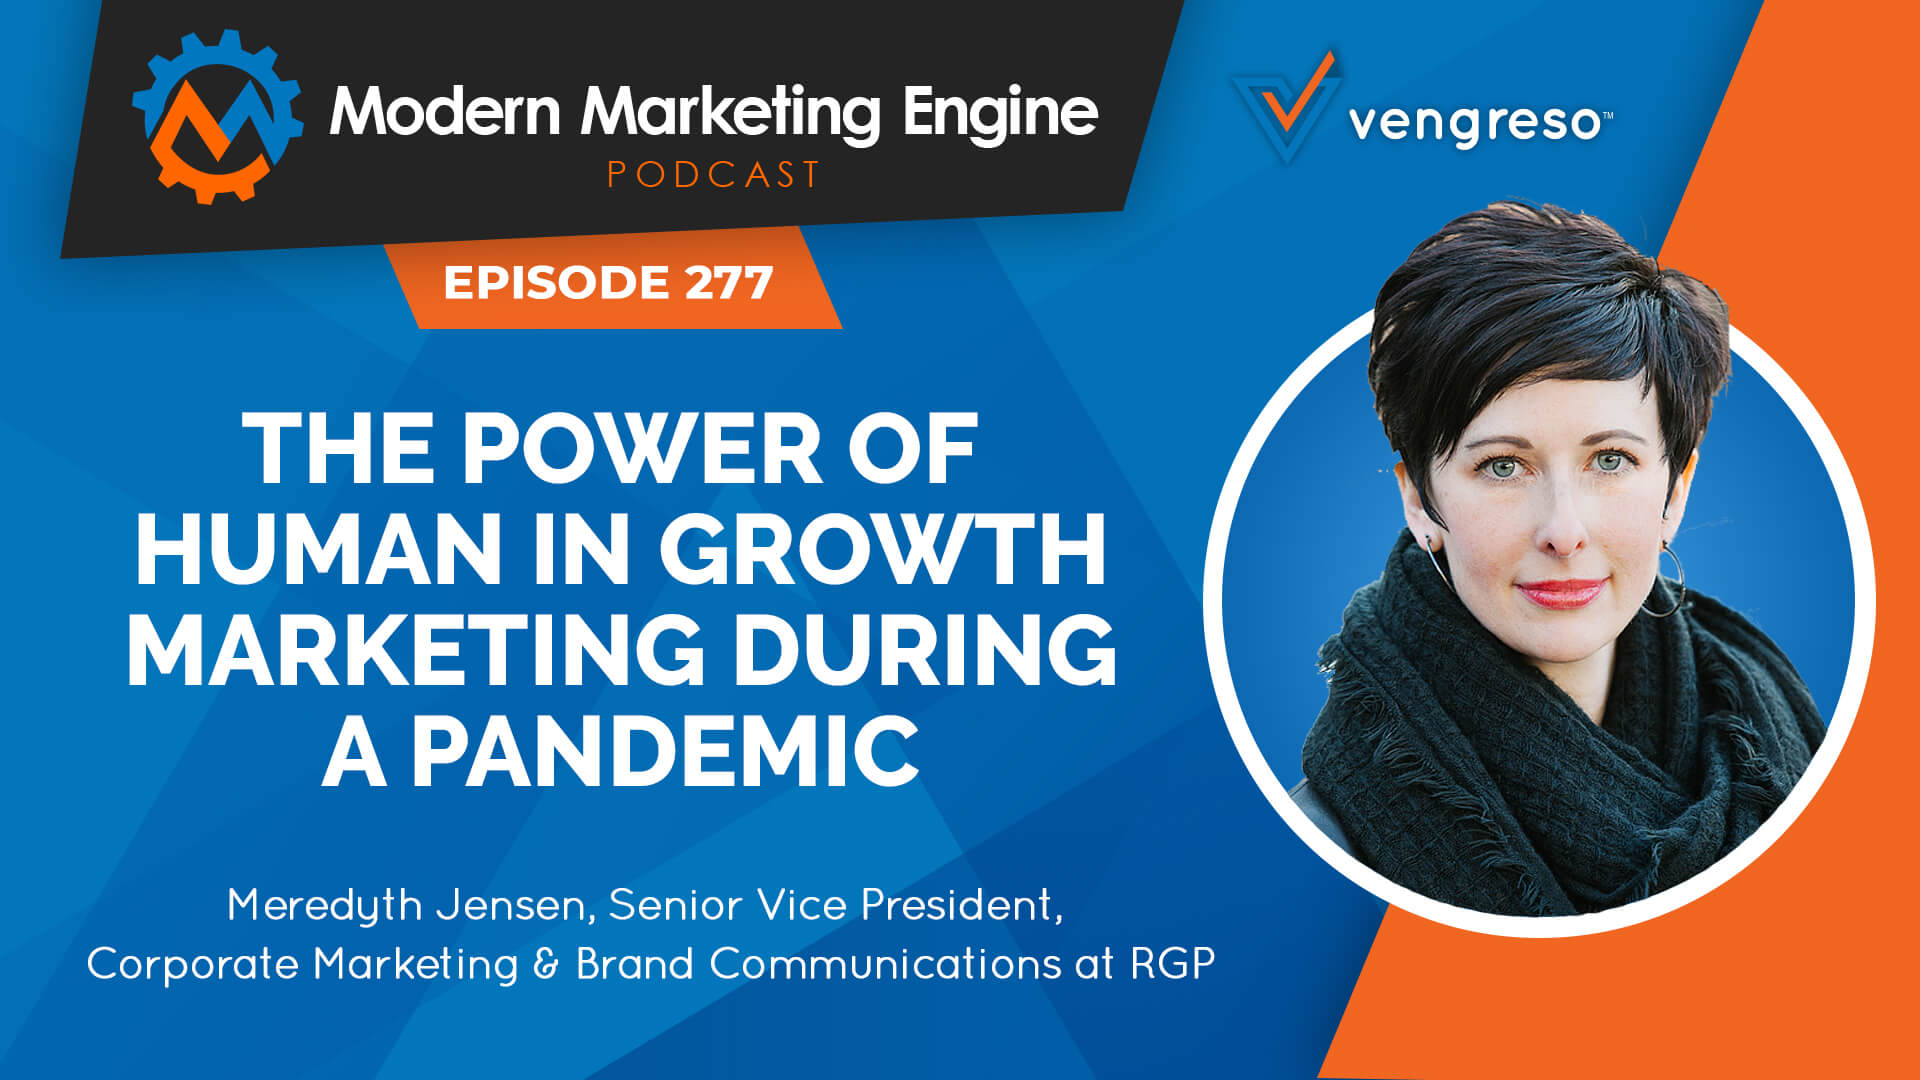 Modern Marketing Engine Podcast 277 - Meredyth Jensen - Growth Marketing